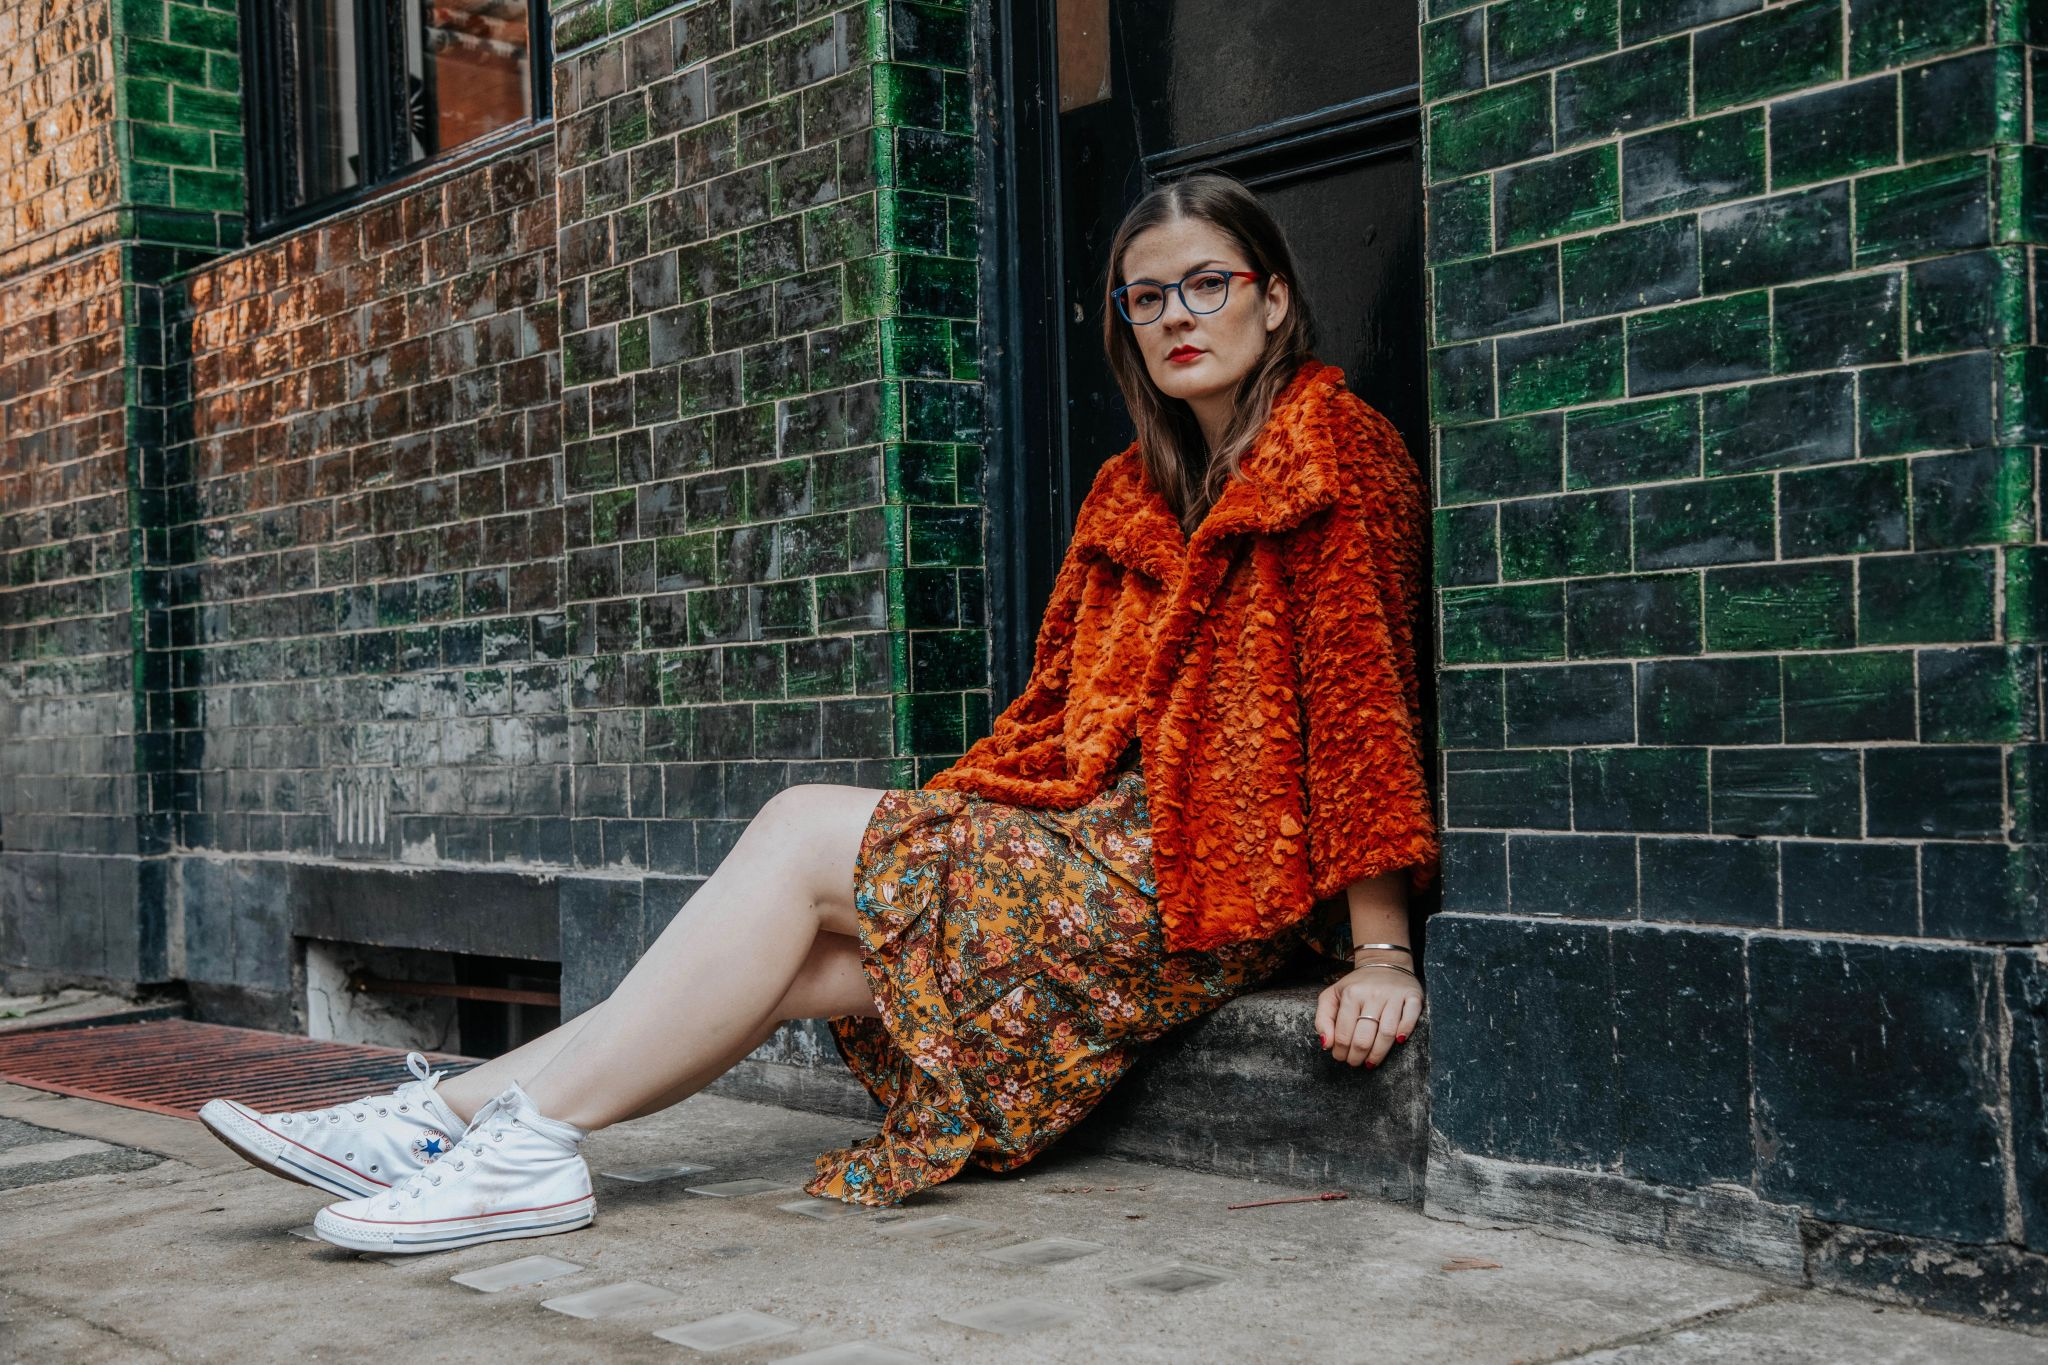 Kate Winney Little Miss Winney Hating Instagram Comparison Orange Jacket Asos Glasses